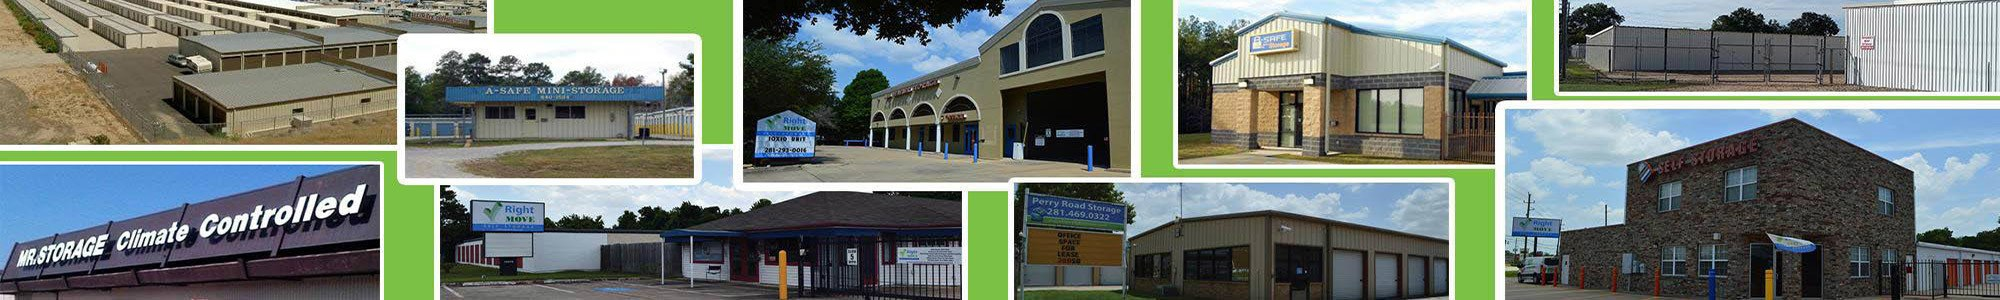 Features of Folly Road Self Storage in Charleston, SC